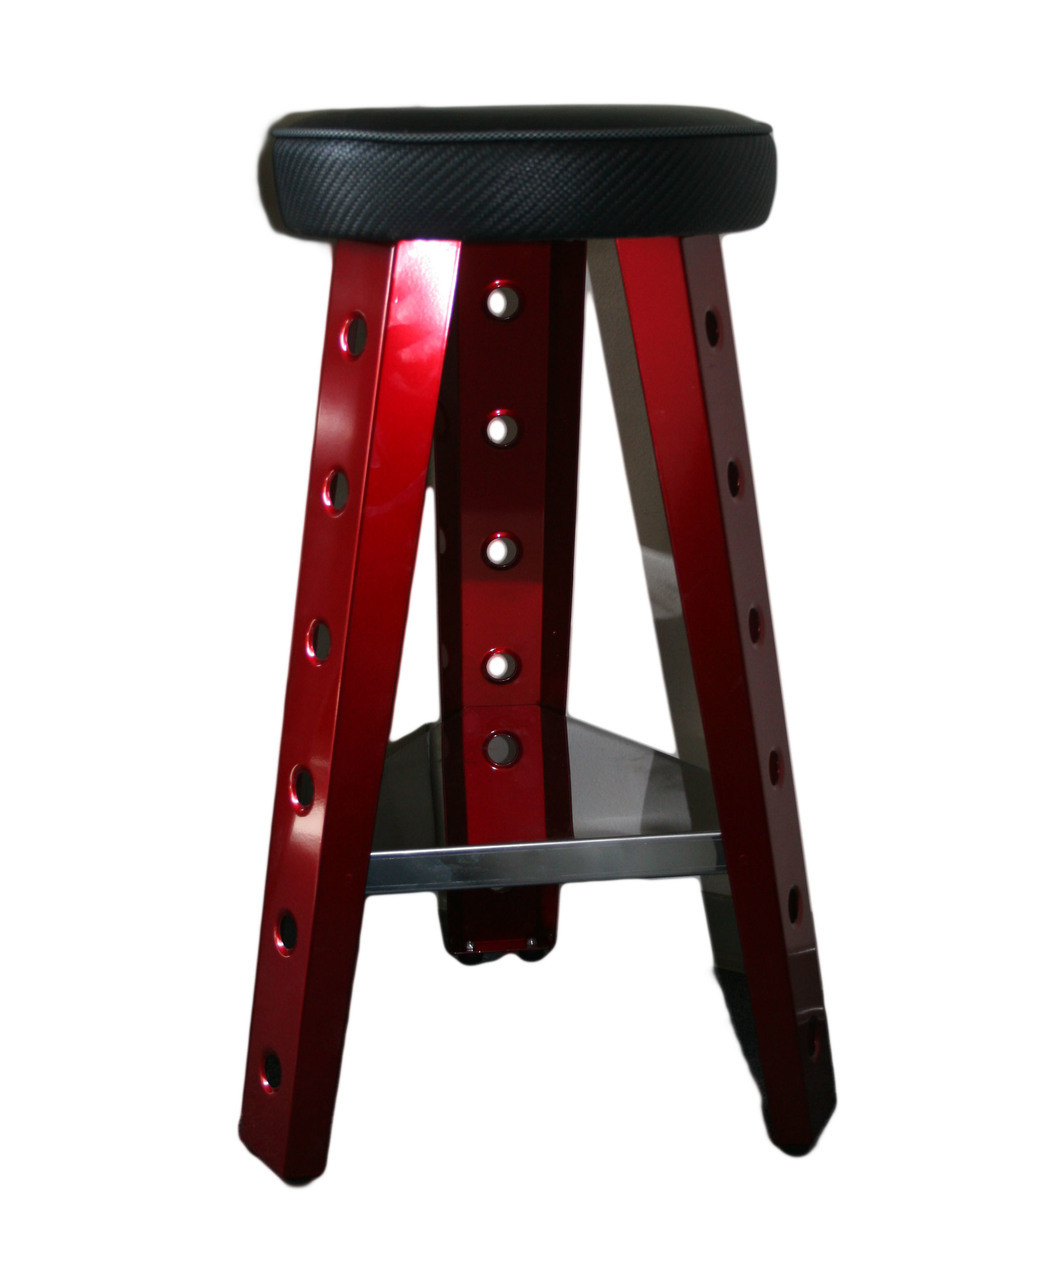 with shop picture rubber hydraulic size outstanding casters harley of backrest concept adjustable large wheelsshop stool stools wheels